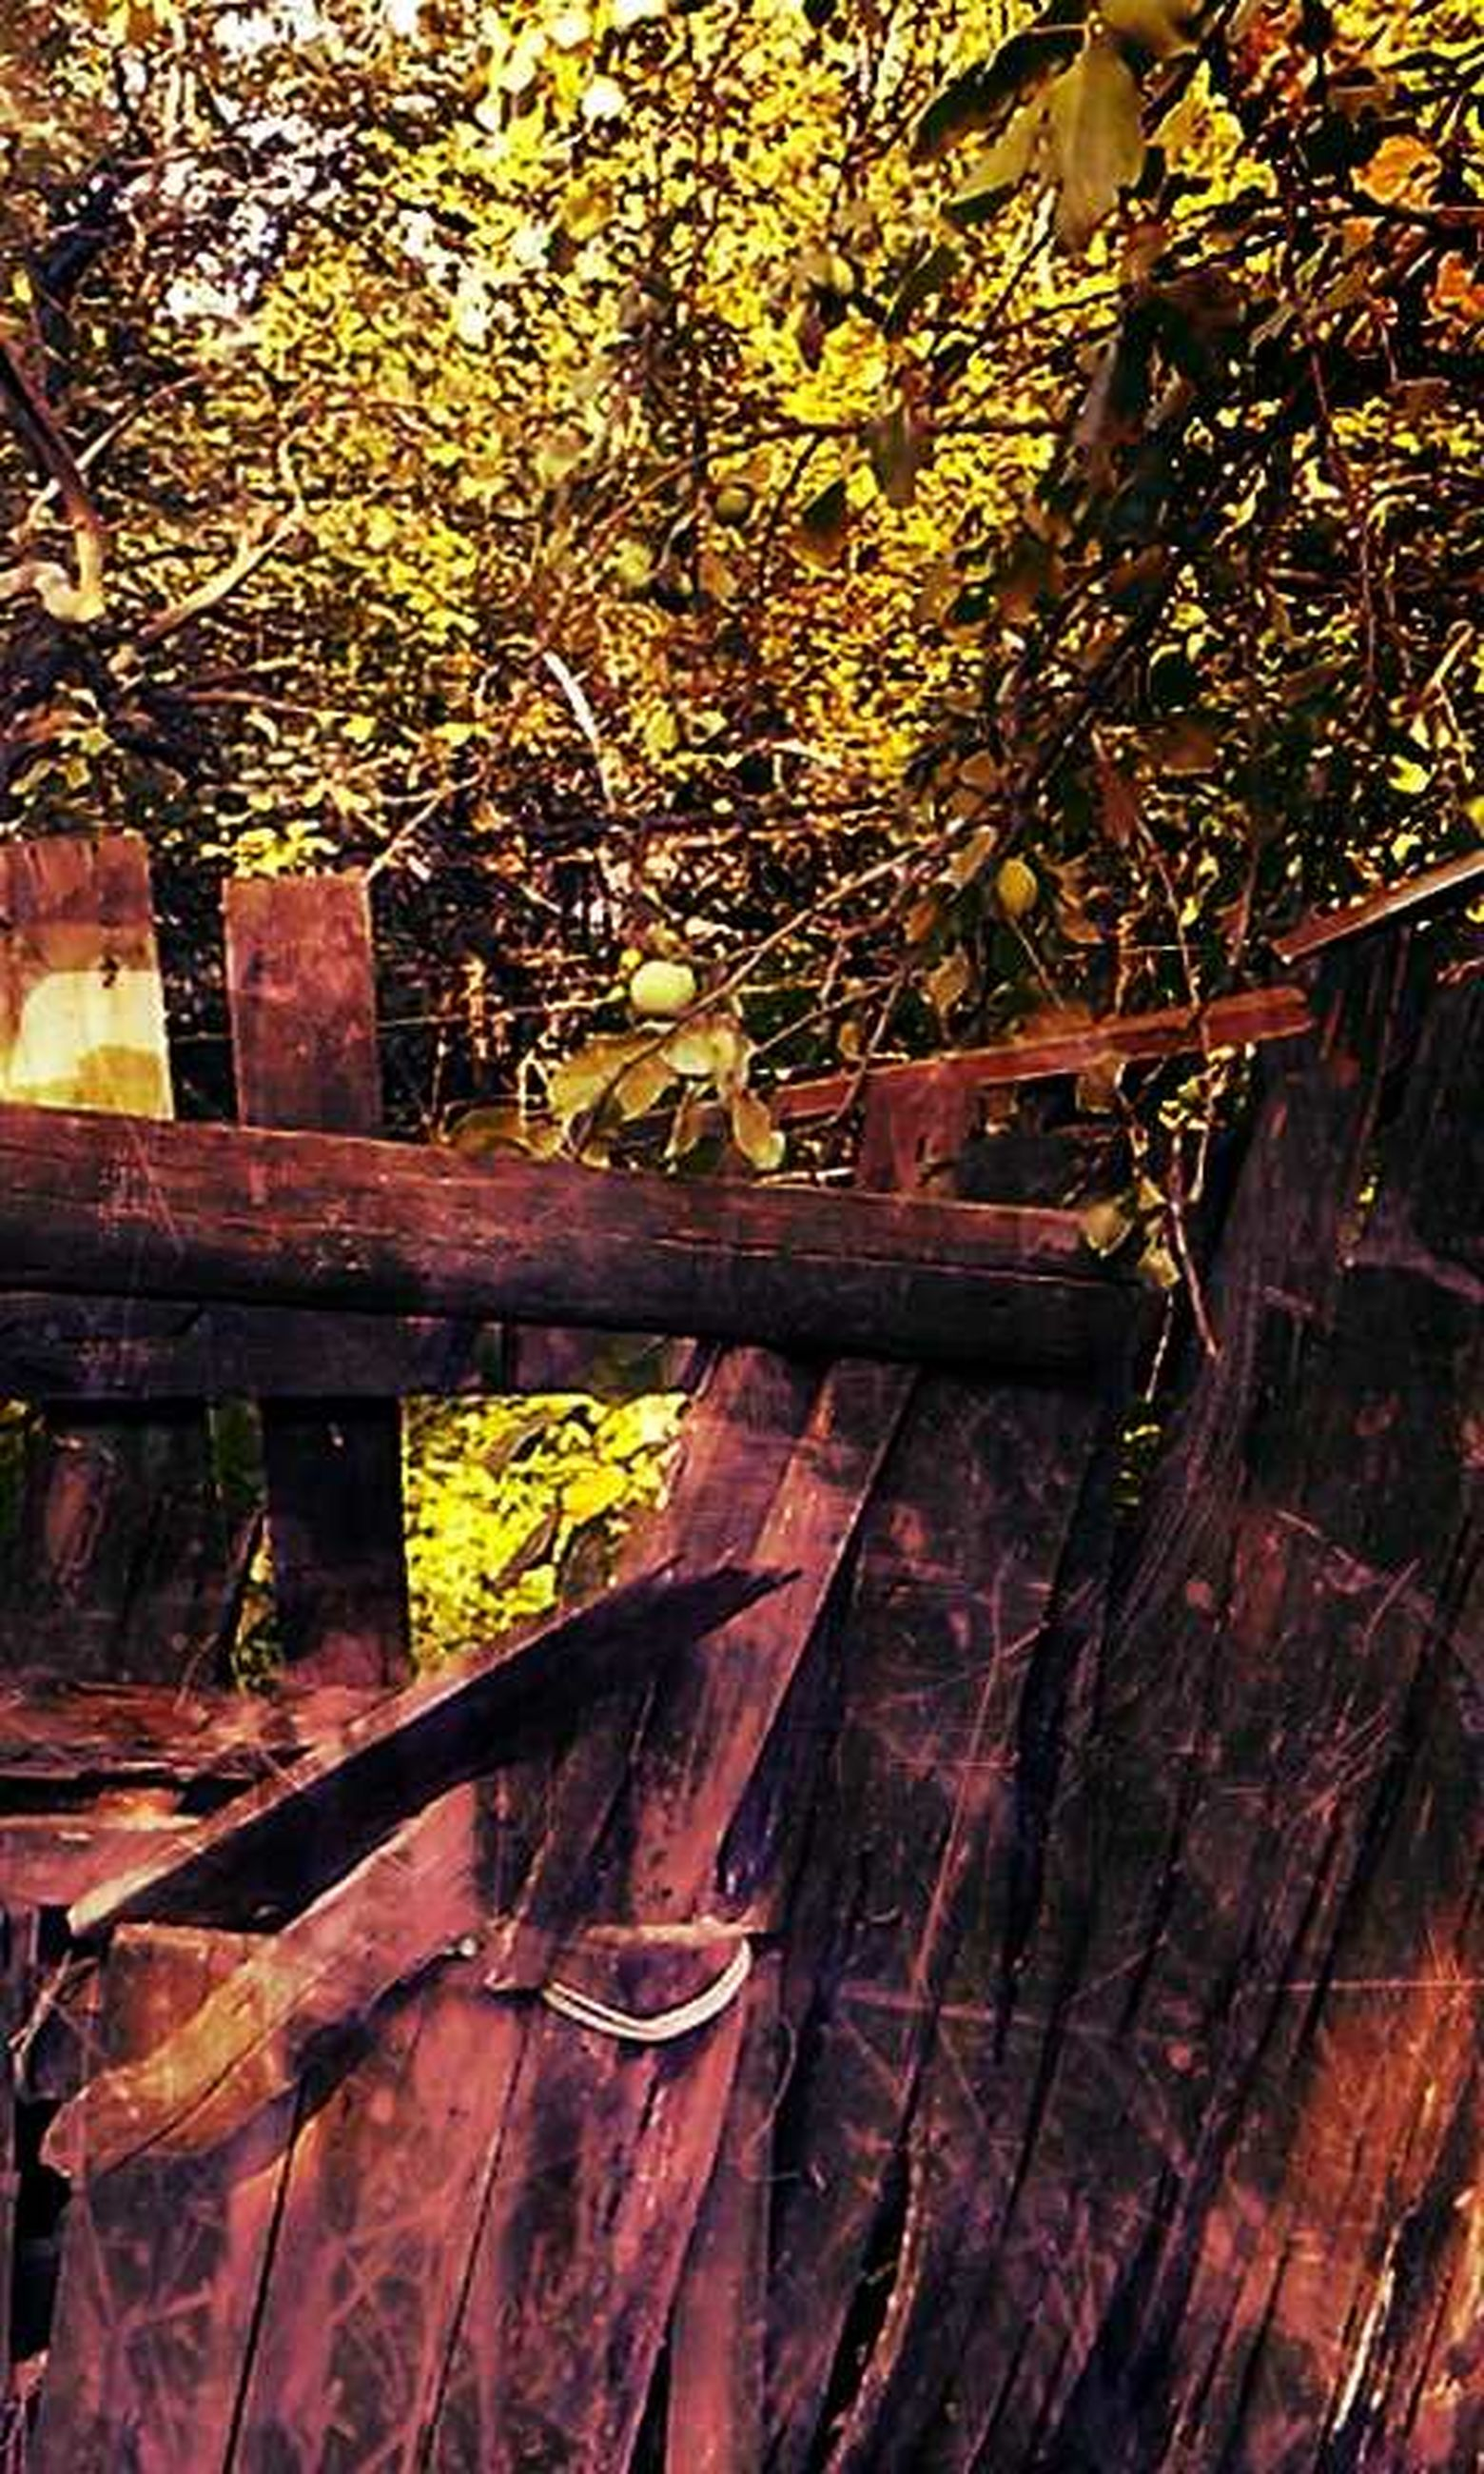 wood - material, tree, wooden, branch, tree trunk, wood, growth, nature, leaf, day, outdoors, no people, old, forest, plank, fence, sunlight, plant, built structure, close-up